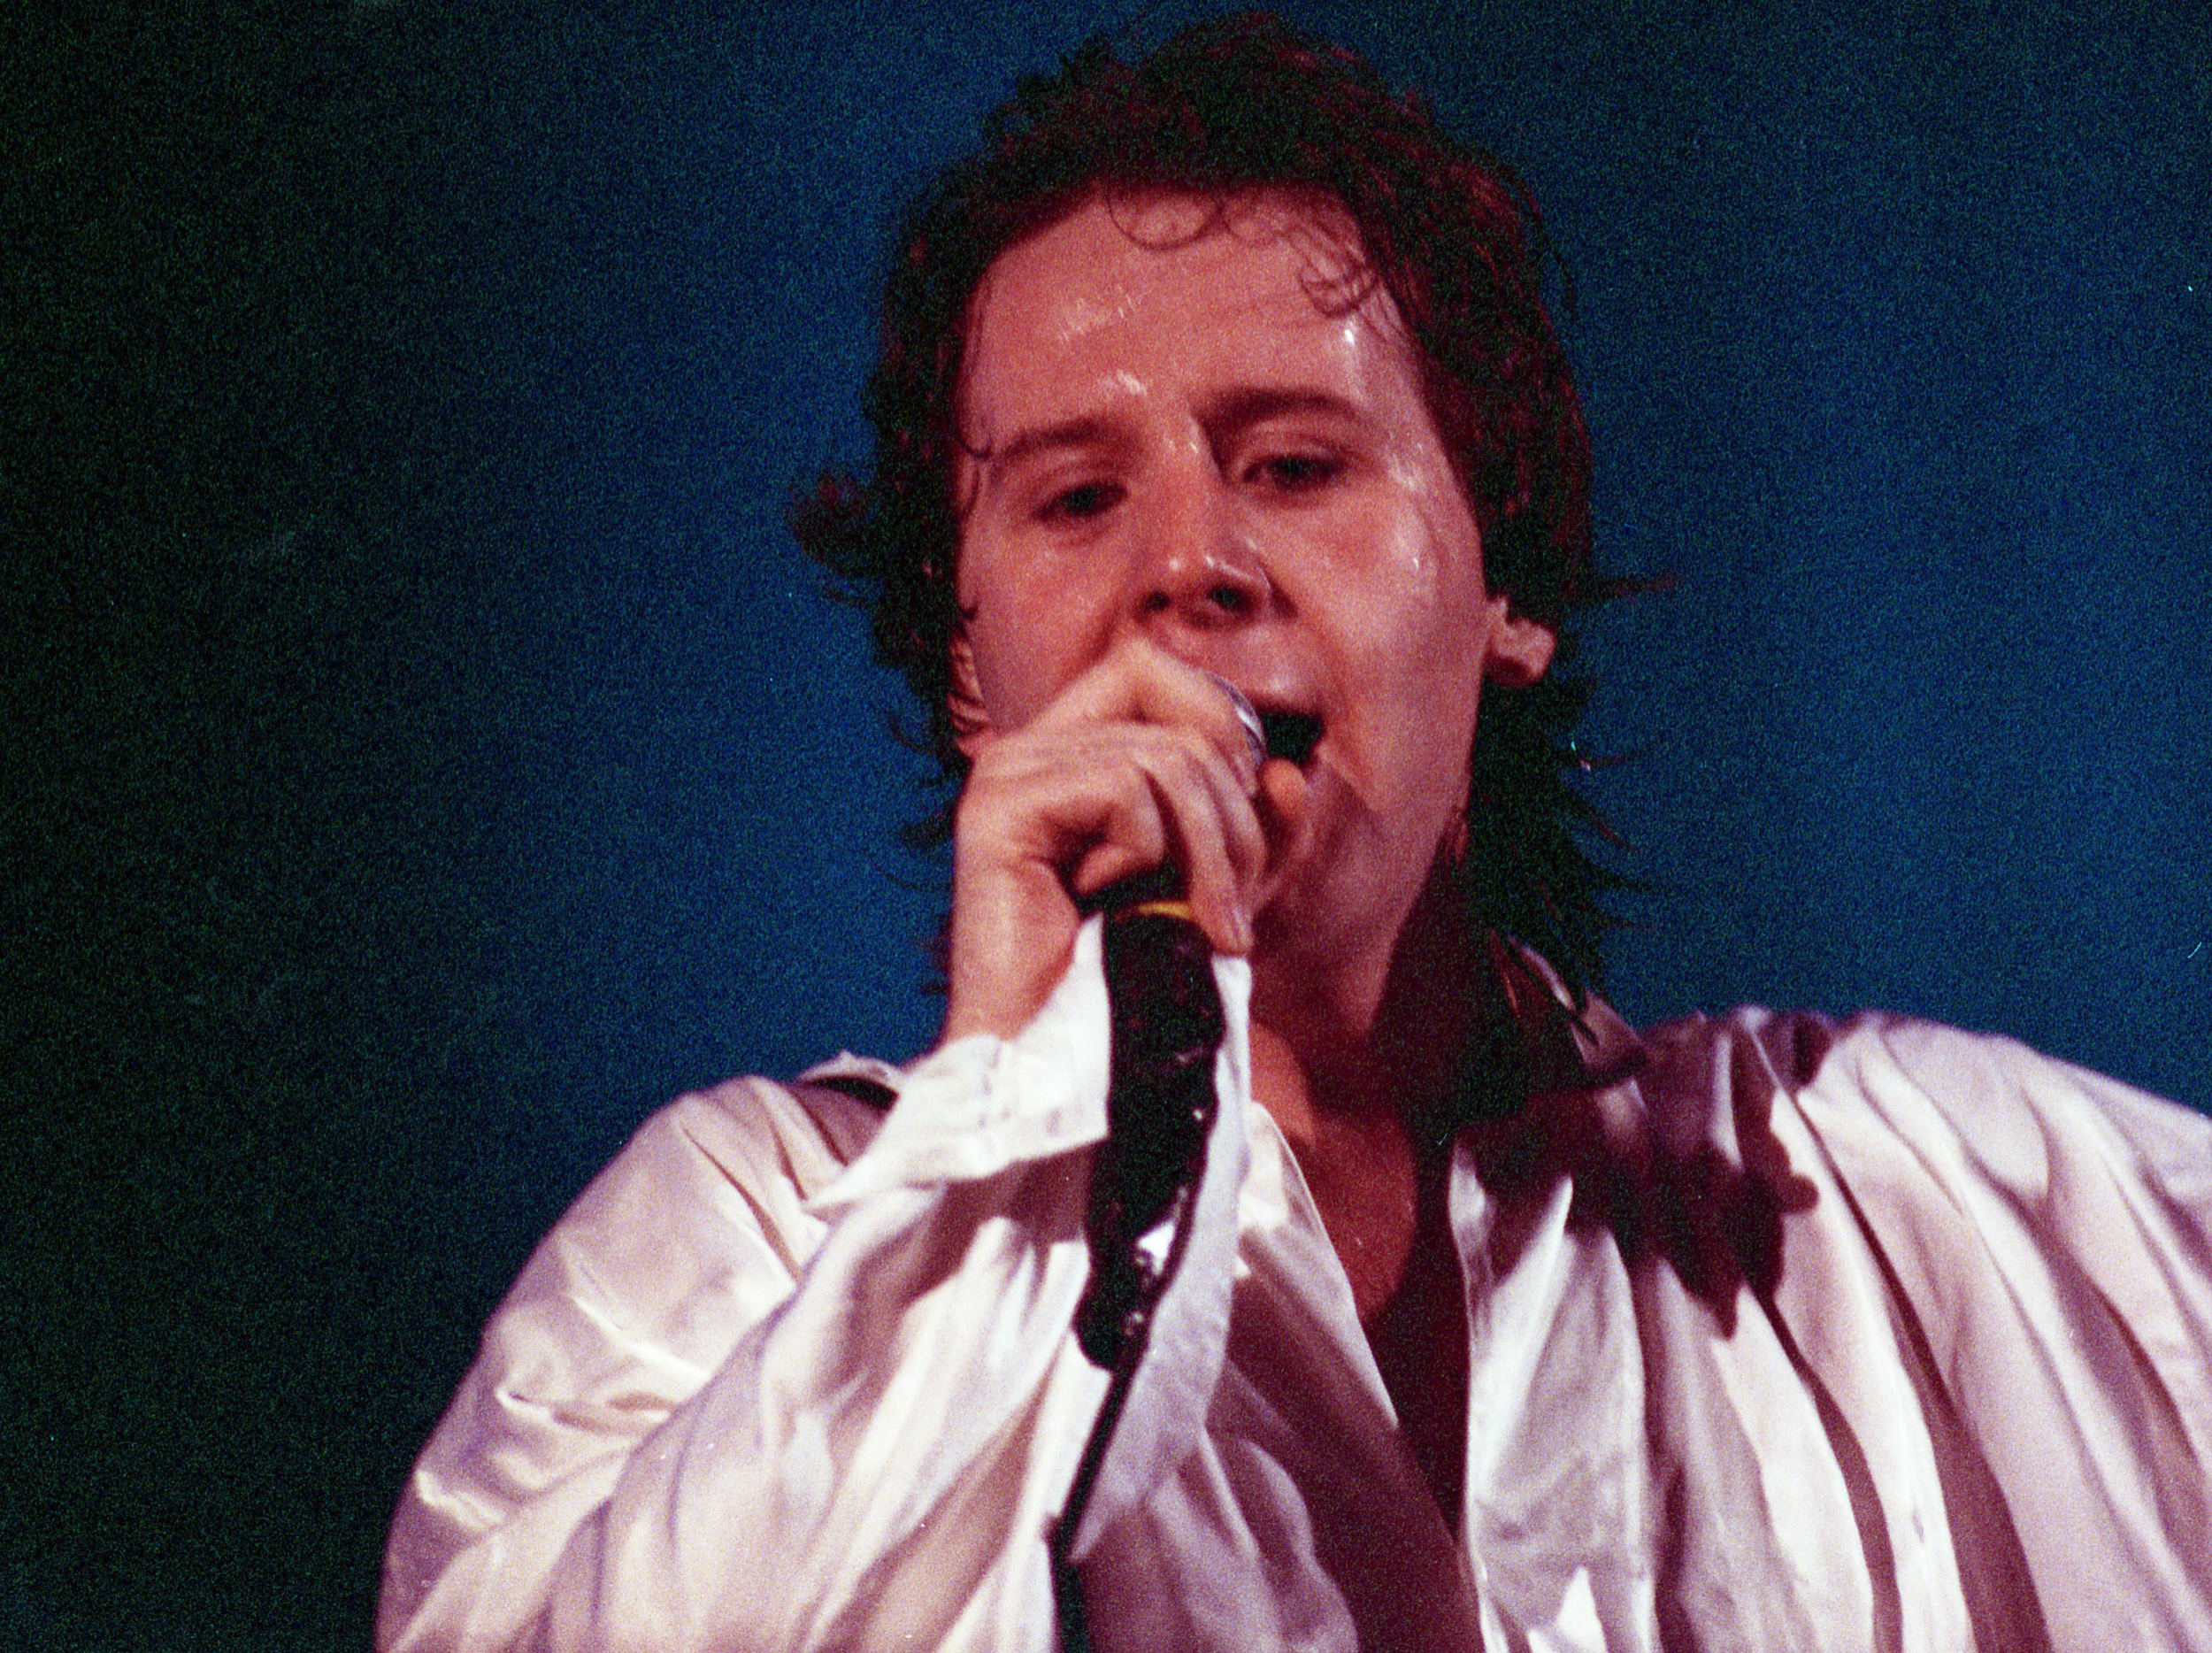 pop muziek popmuziek muzikanten artiest Simple Minds zanger Jim Kerr Ahoy Rotterdam 1 12 1985 Once Upon A Time Tour rock